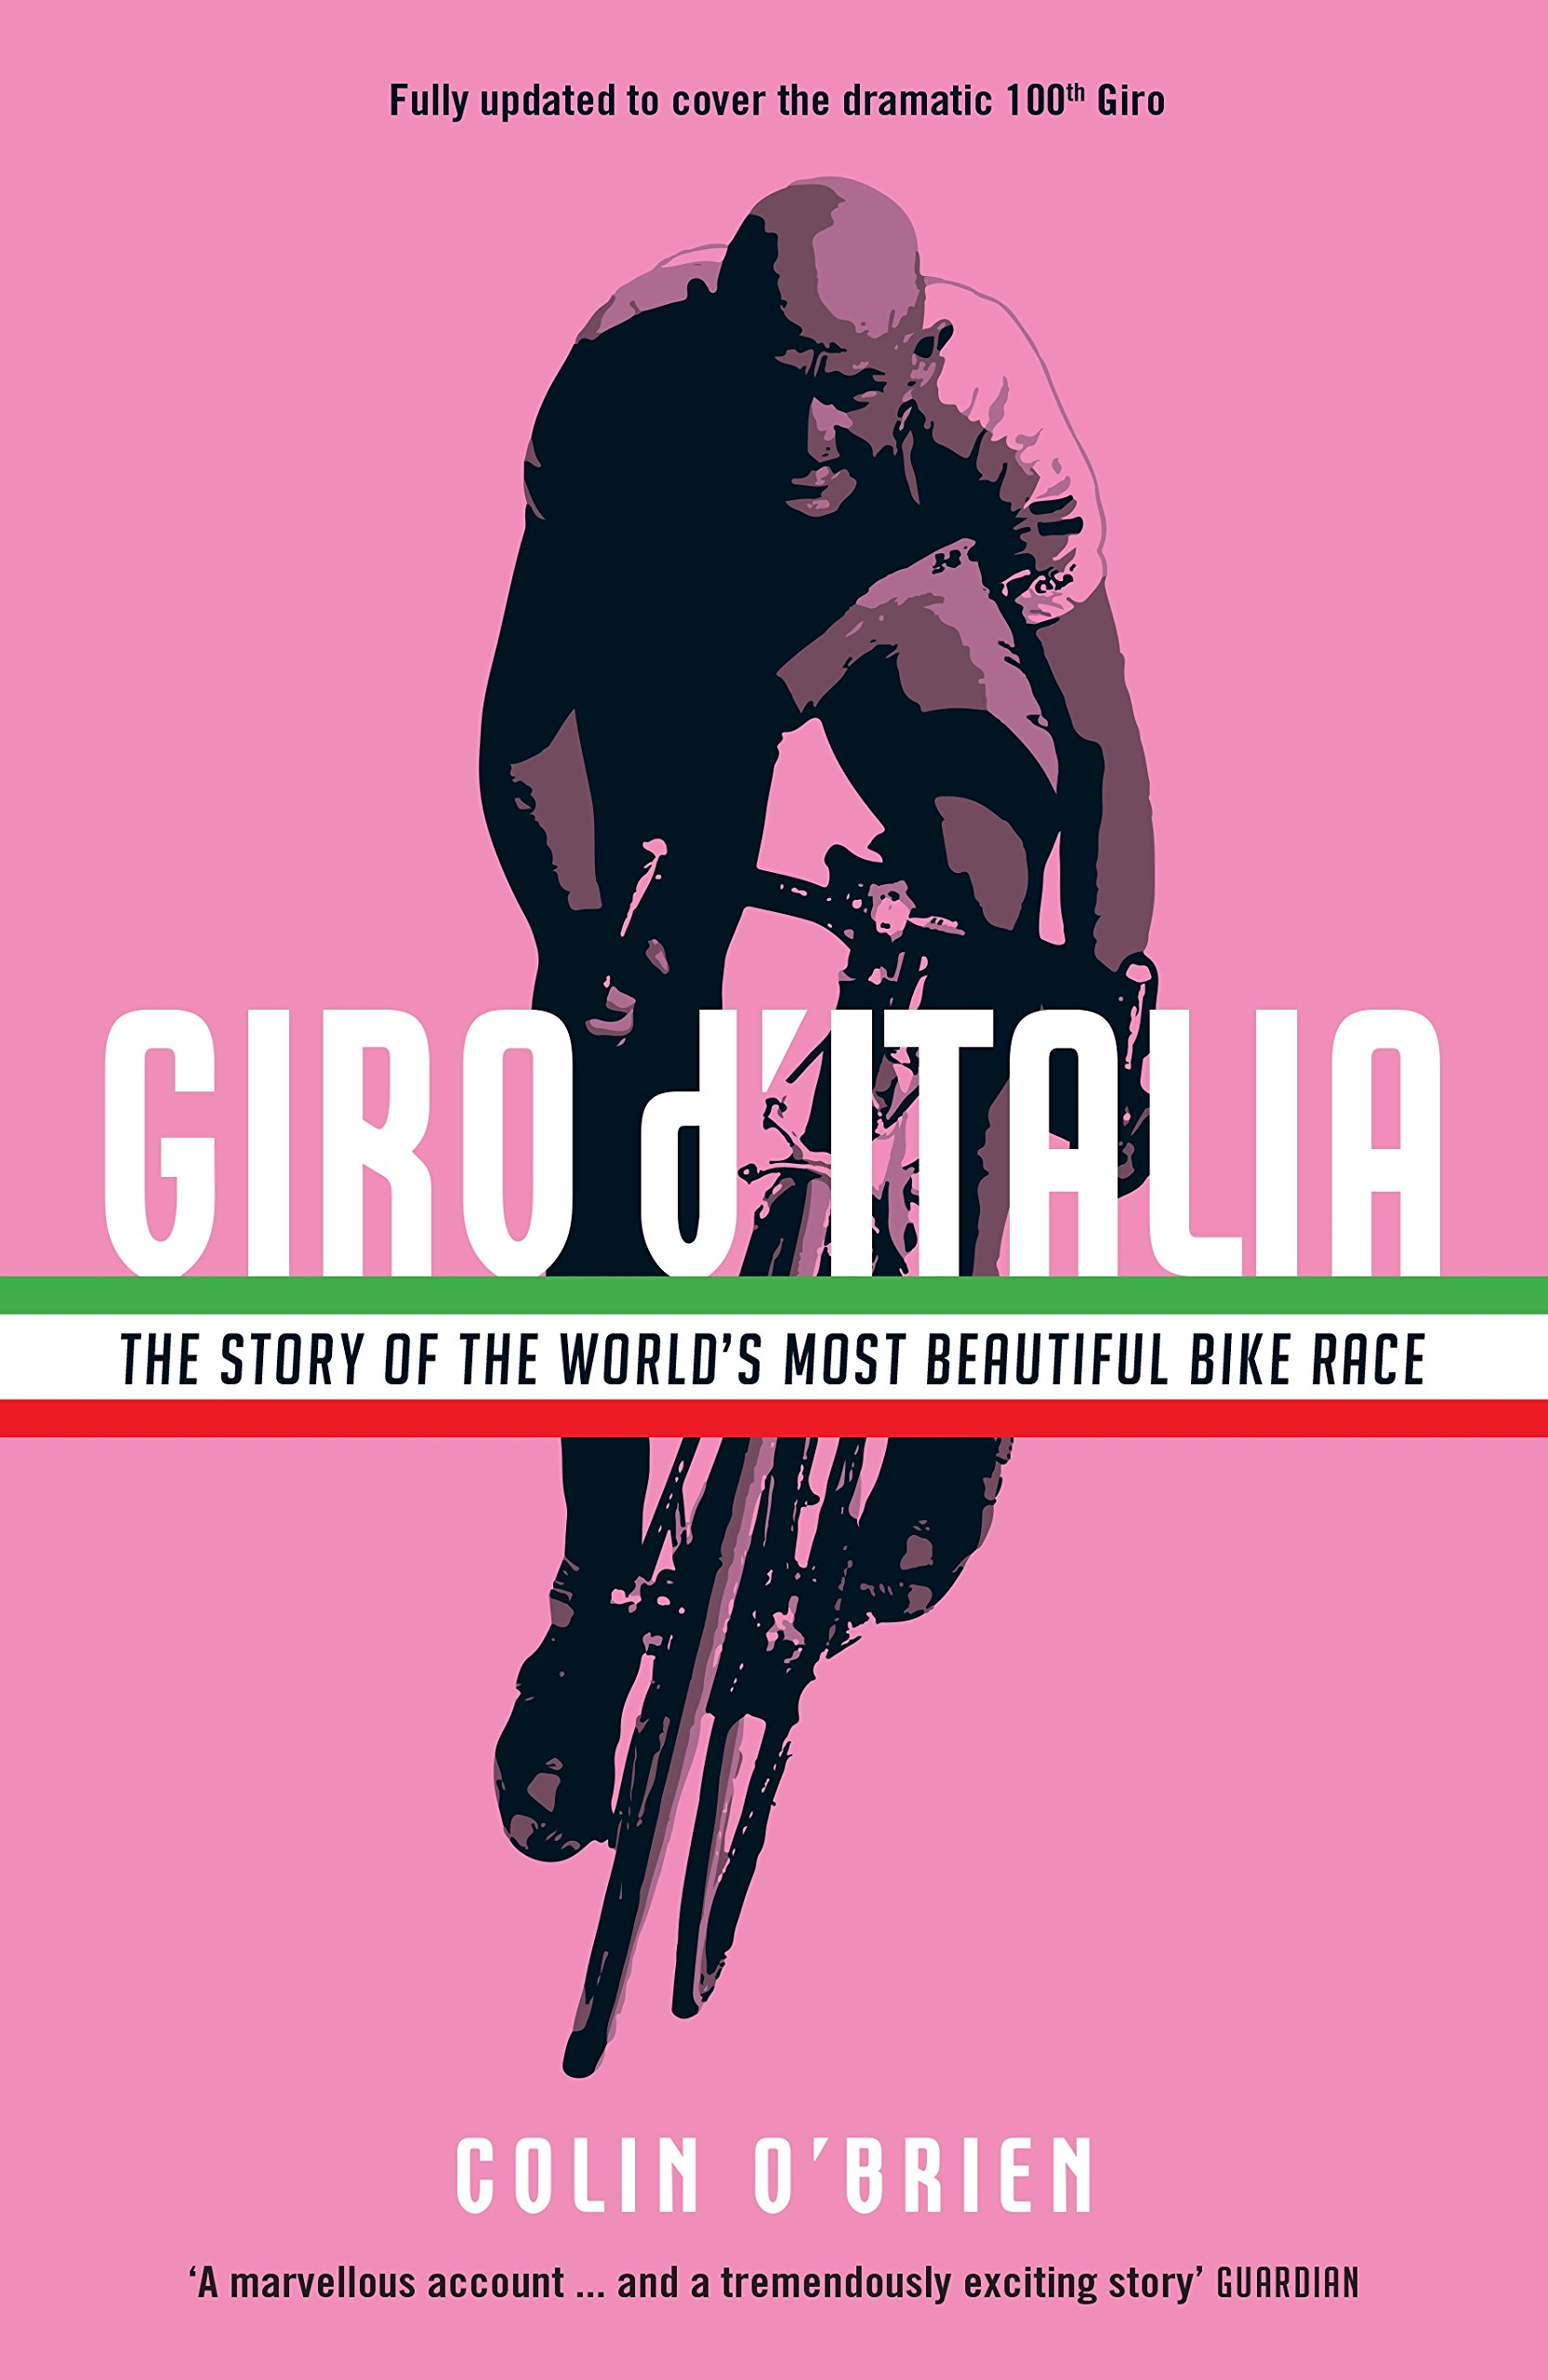 Image OfGiro D'Italia: The Story Of The World's Most Beautiful Bike Race (English Edition)